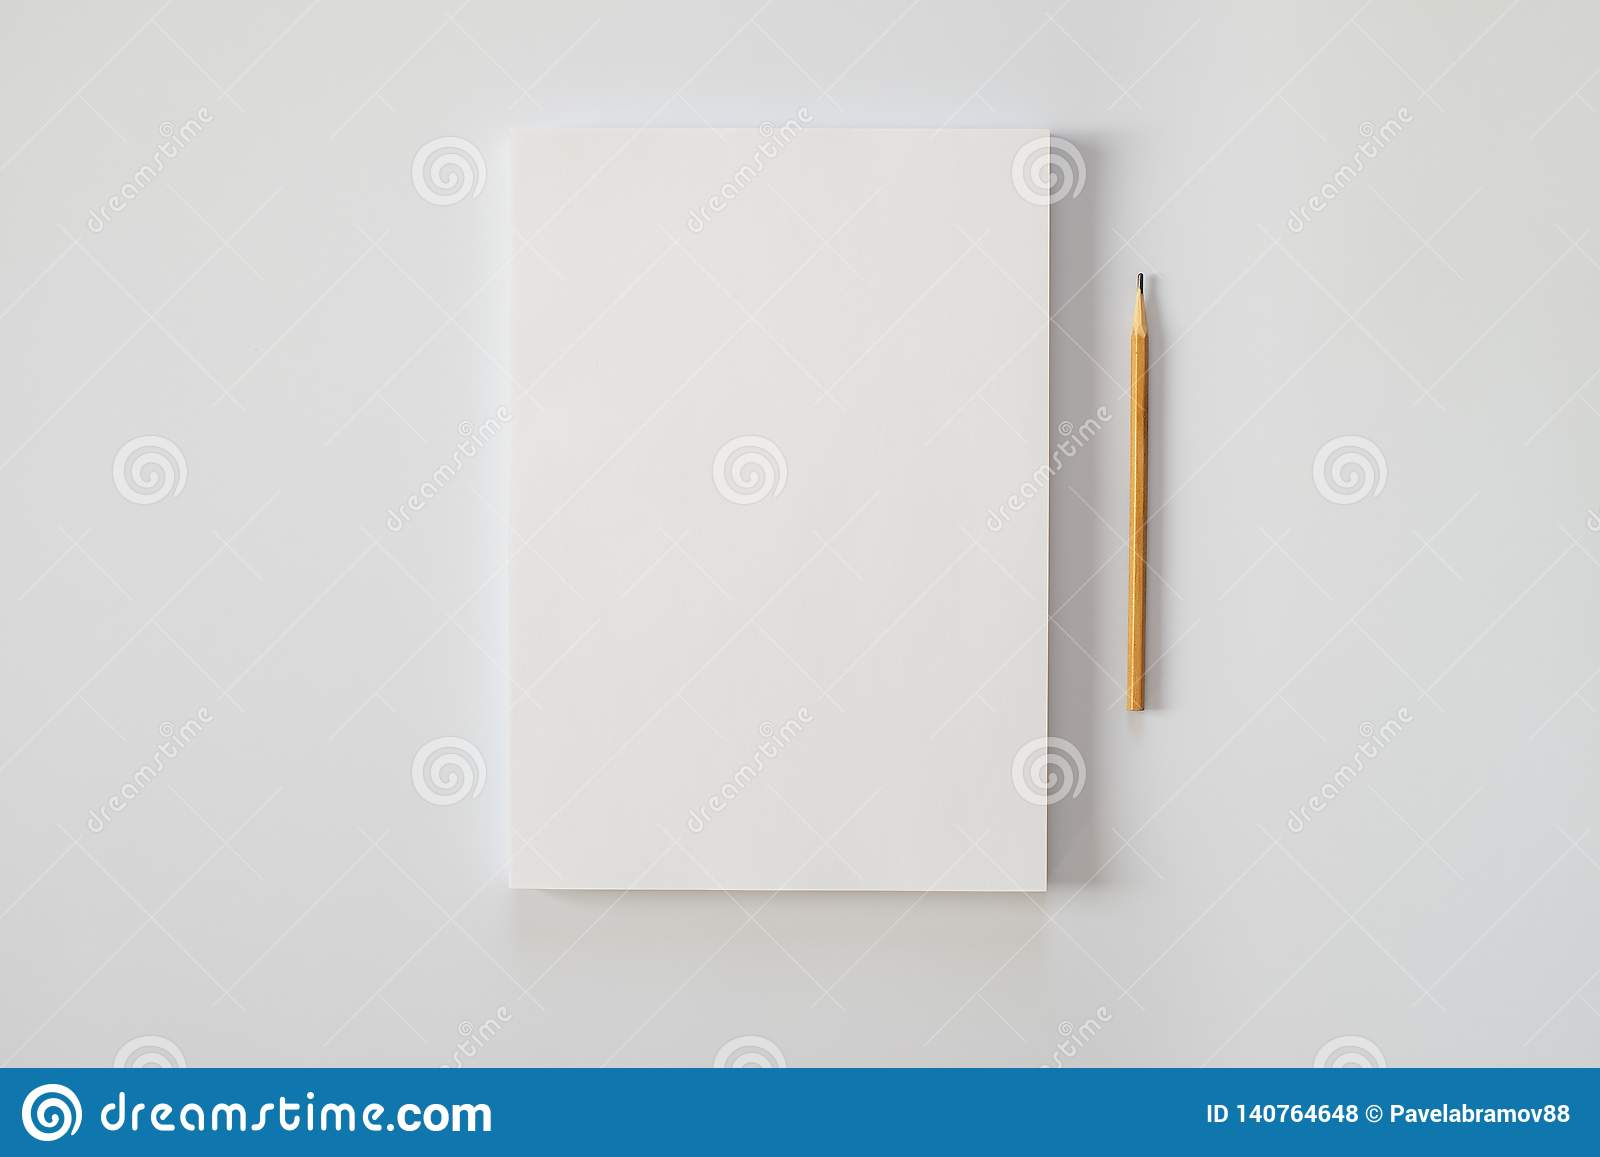 A stack of blank sheets of paper and a pencil on a white background